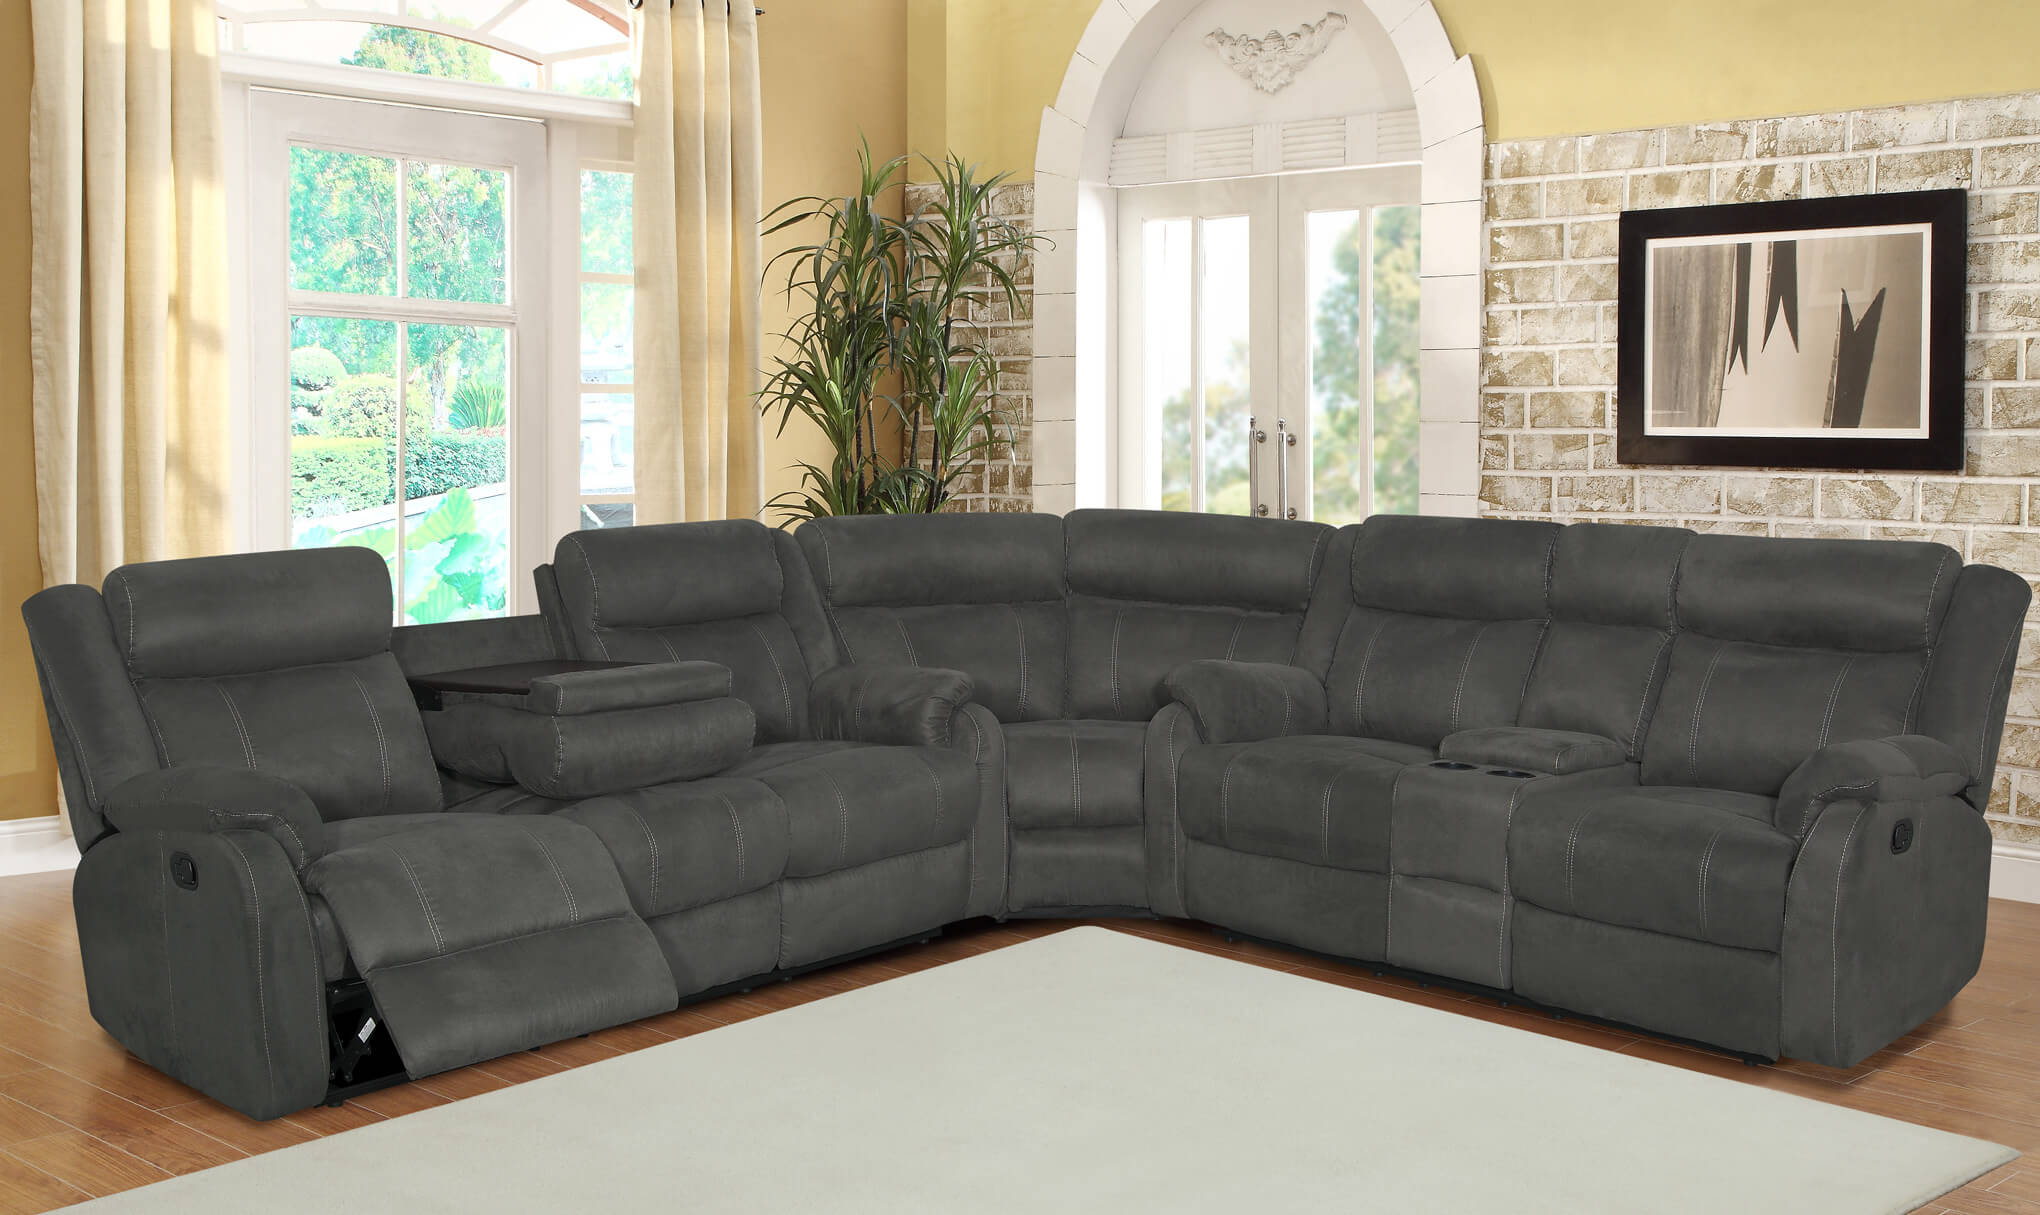 grey reclining sectional sectional sofa sets. Black Bedroom Furniture Sets. Home Design Ideas